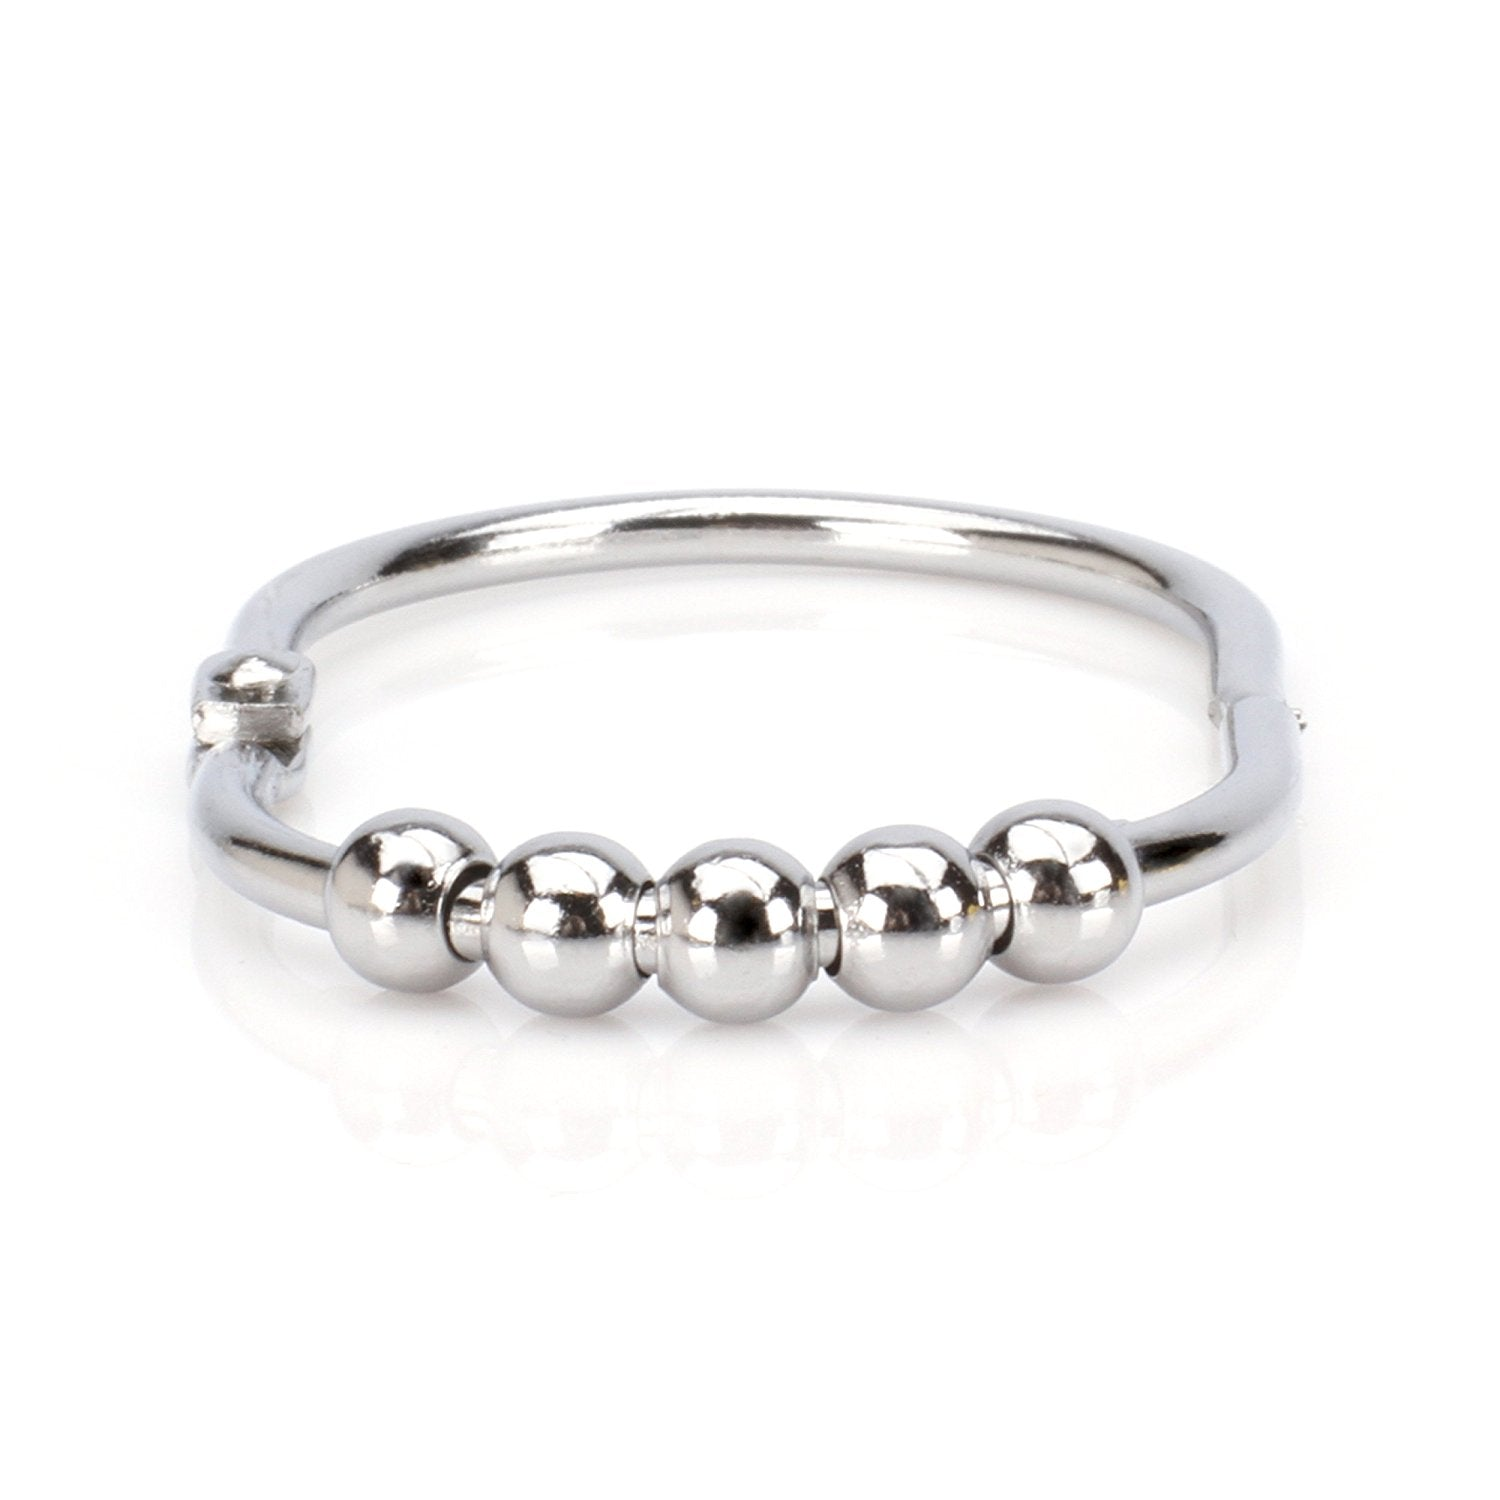 Polished Chrome WIDE Roller Shower Curtain Rings-$40 ORDERS SHIP ...